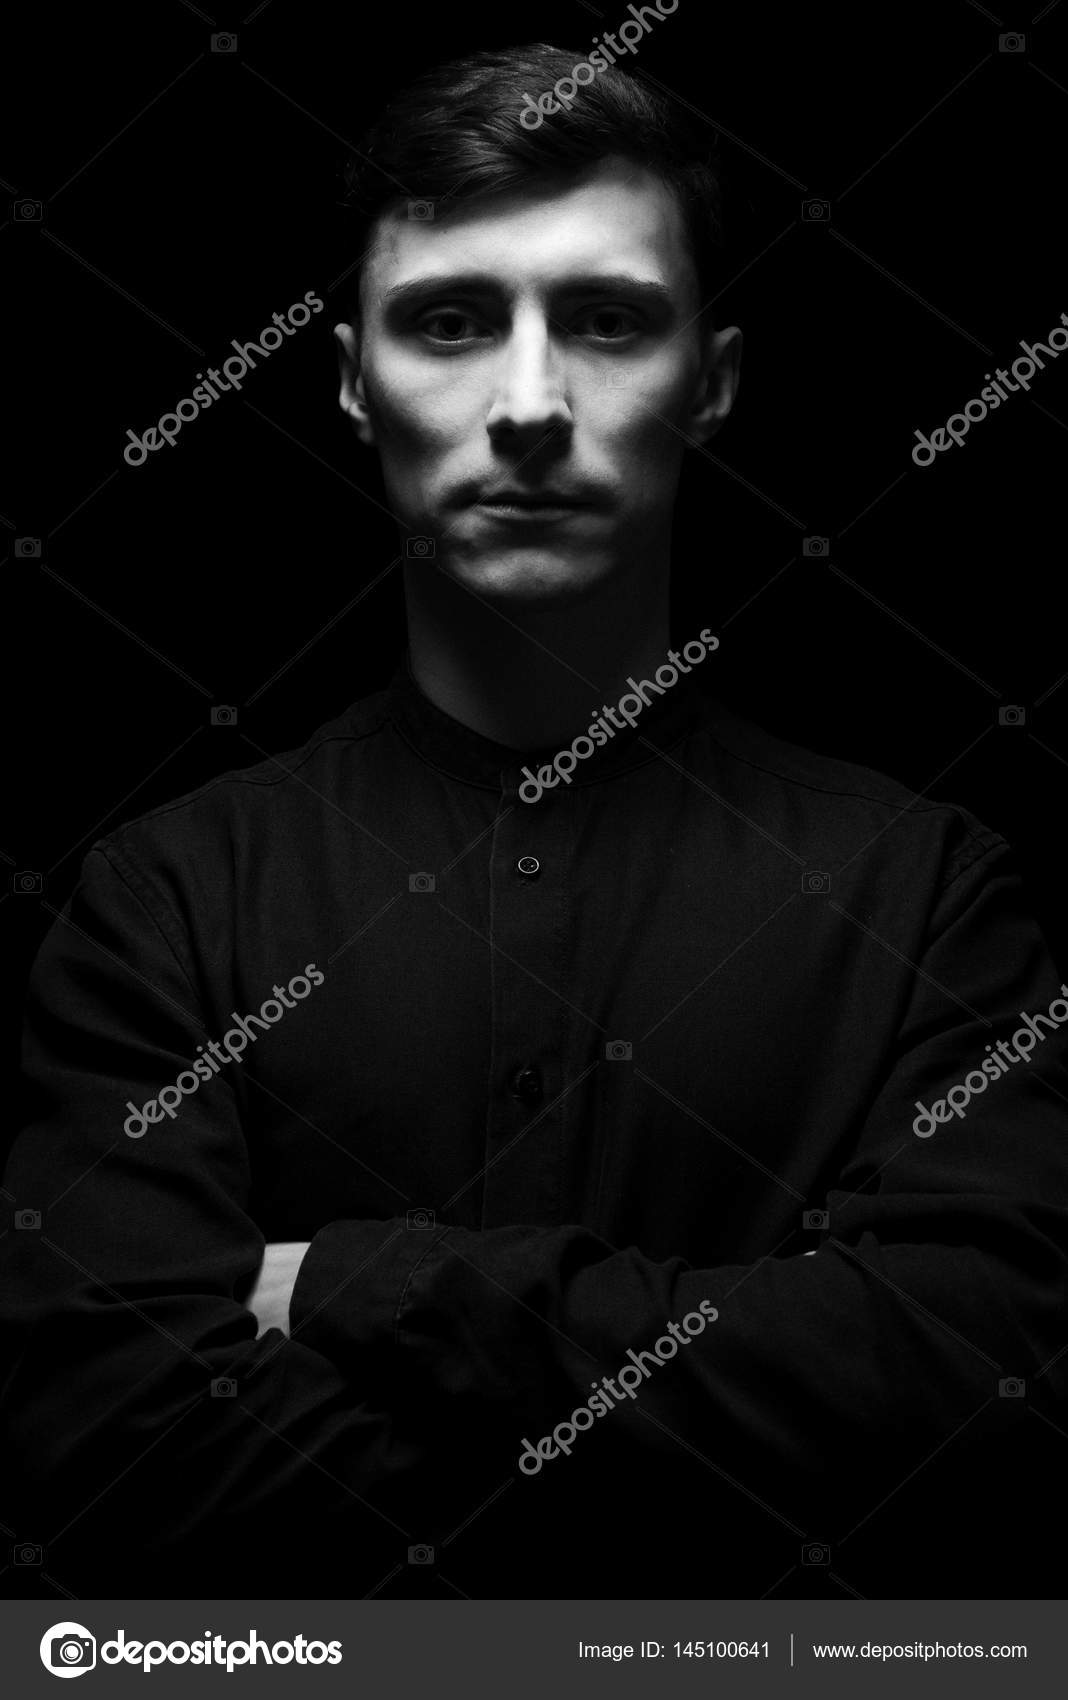 Low key portrait of a man in black shirt in black and white photo by pogrig001gmail com